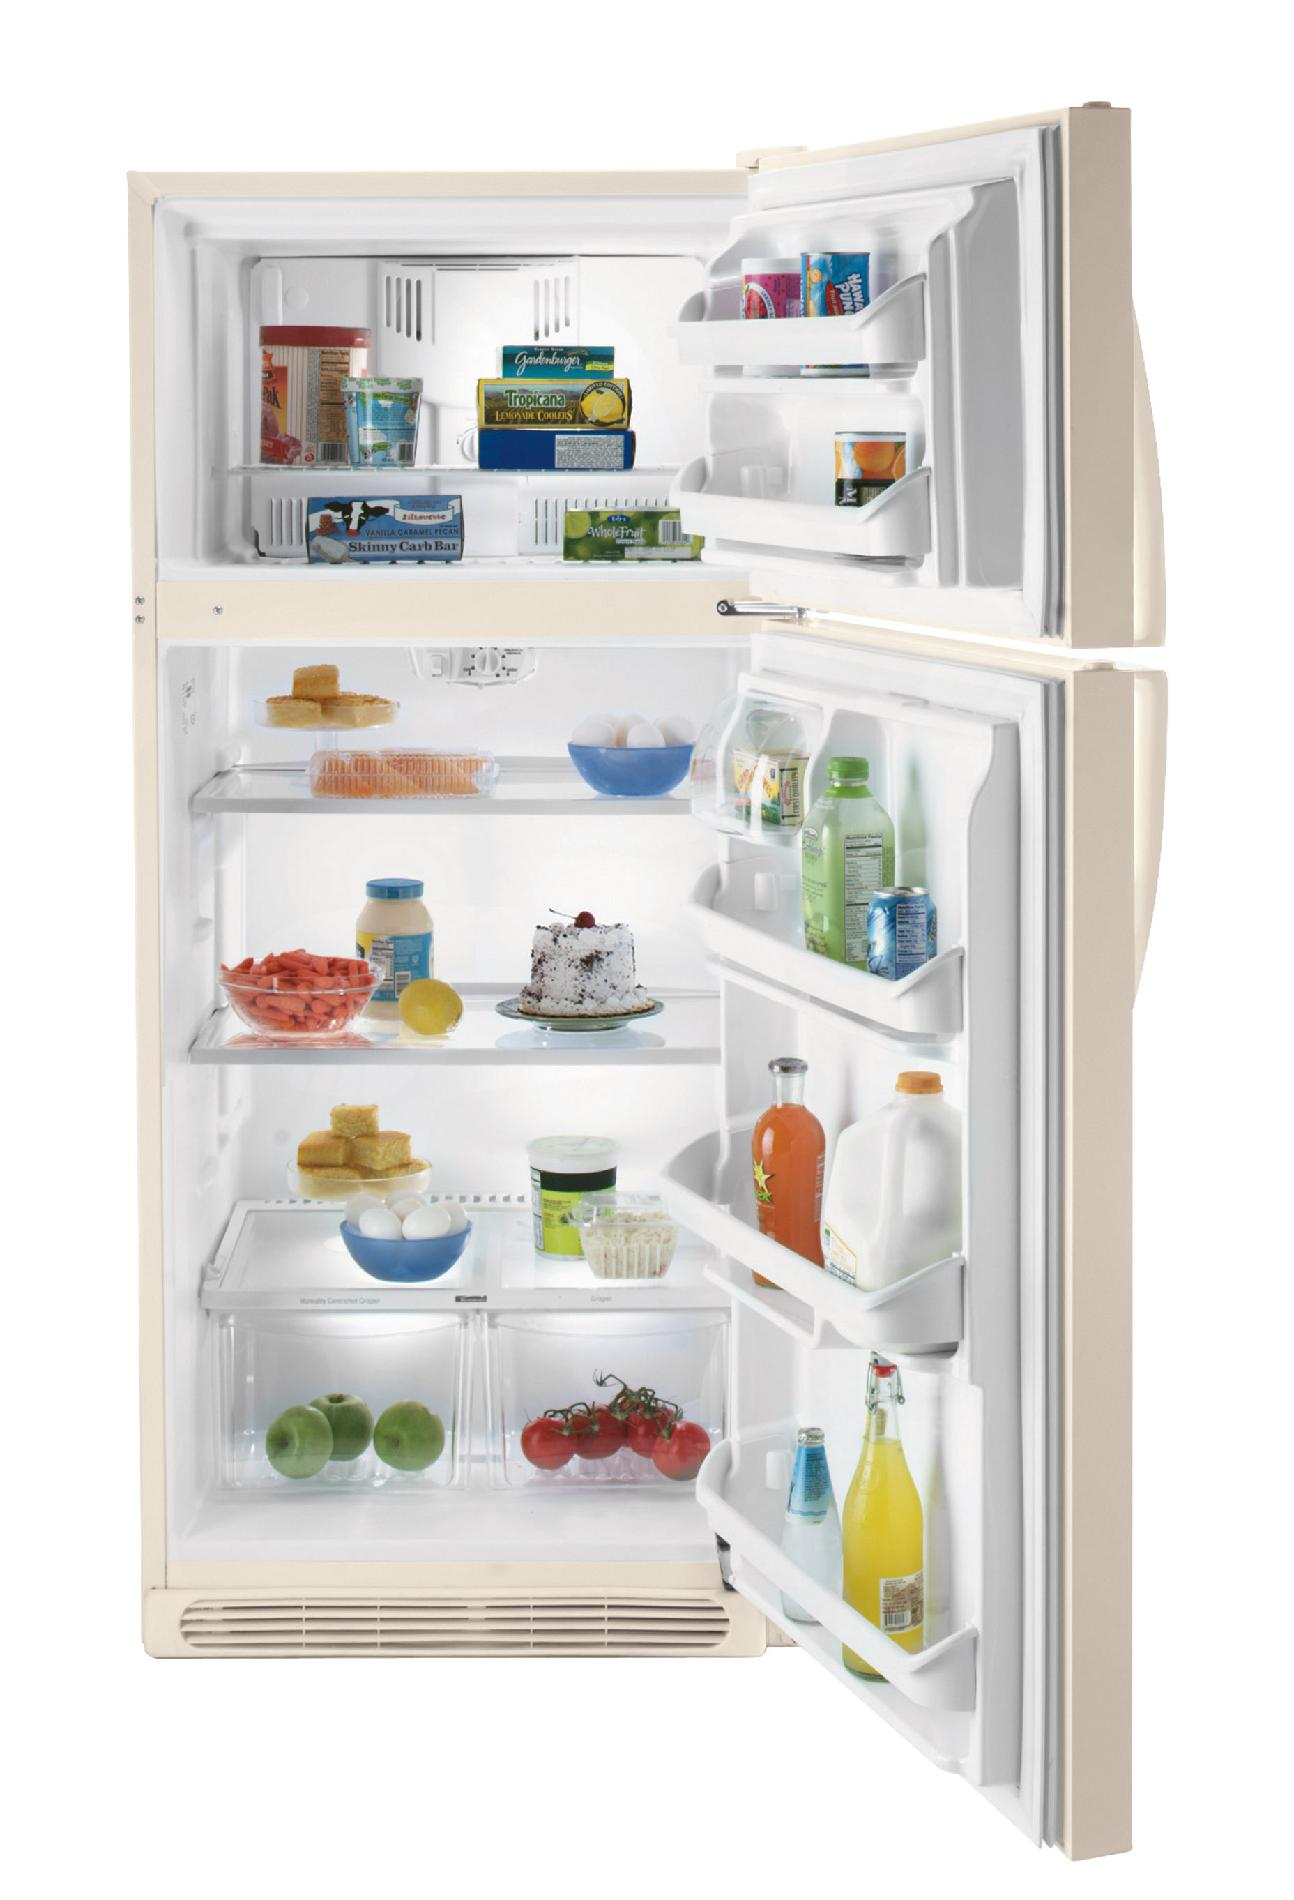 Kenmore 18.2 cu. ft. Top-Freezer Refrigerator, Bisque